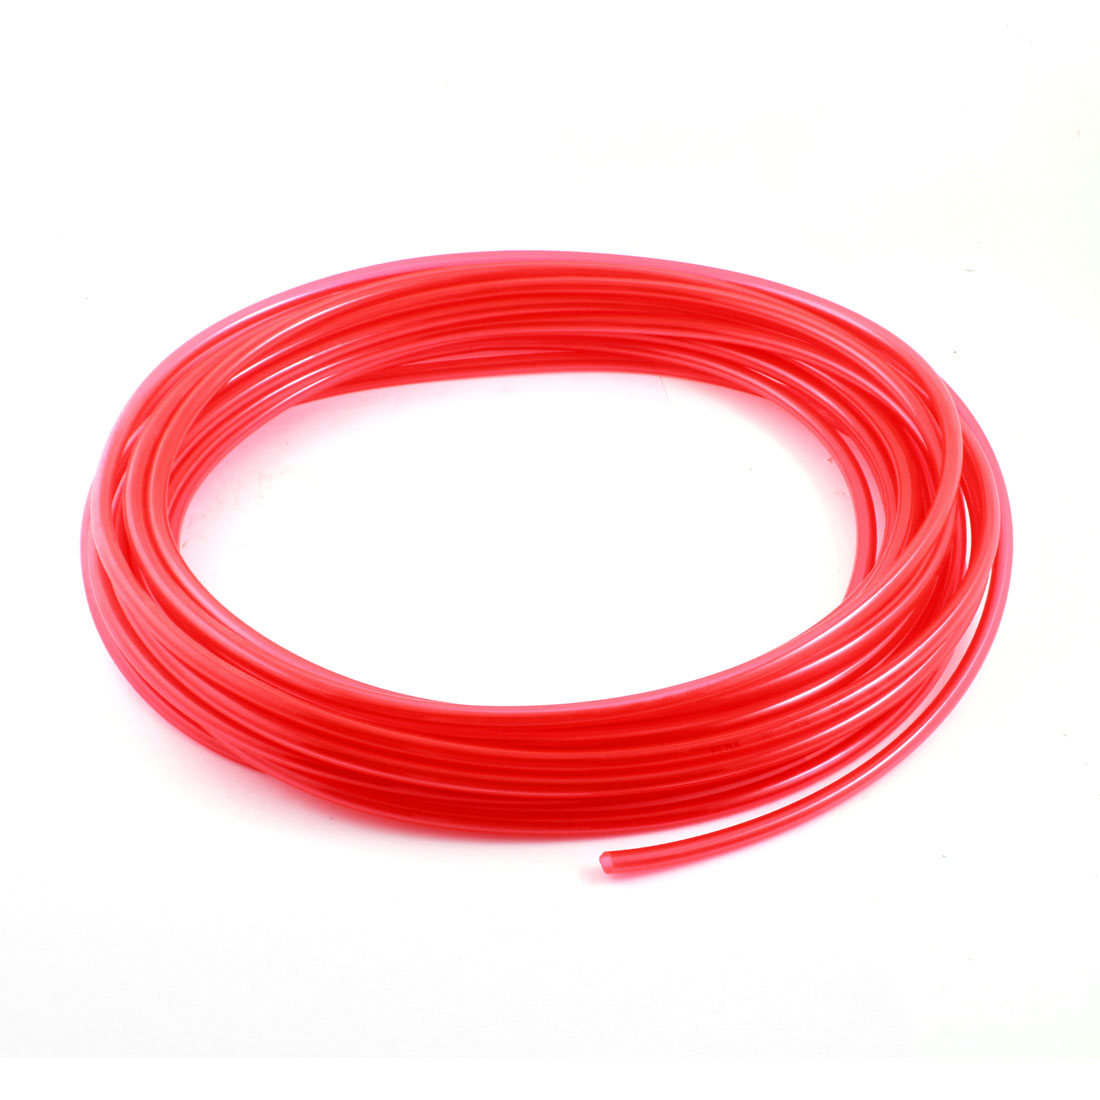 5mm x 8mm 15M/50Ft Long Clear Red Polyurethane Flexible Gas Fuel Water Pipe Pneumatic Hose Air PU Tube